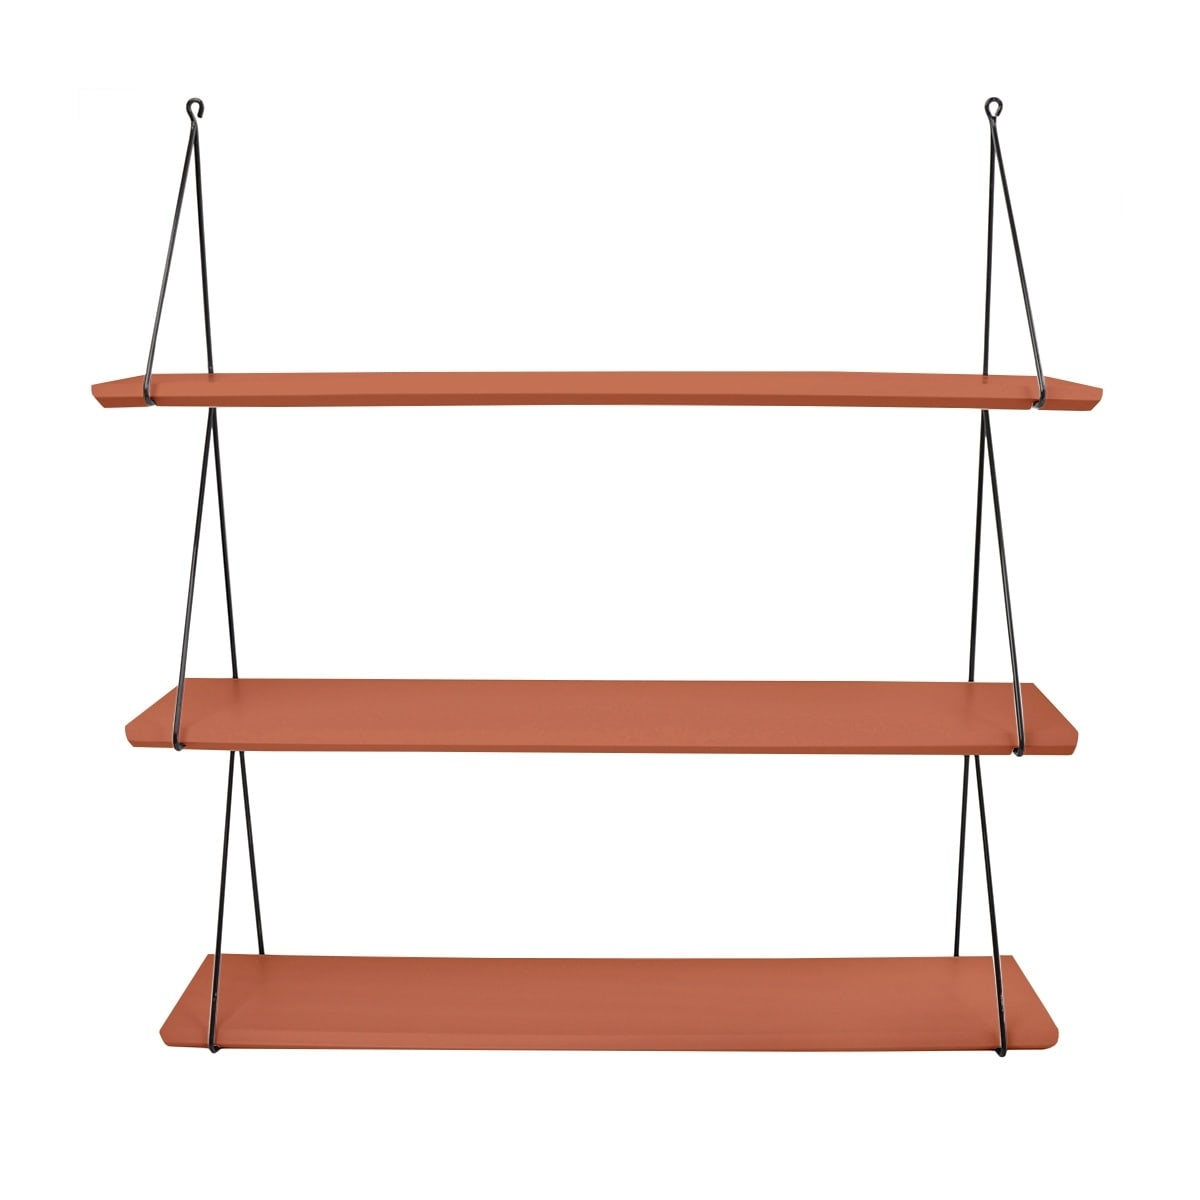 Babou 3 shelves Clay Rose in April x Smallable